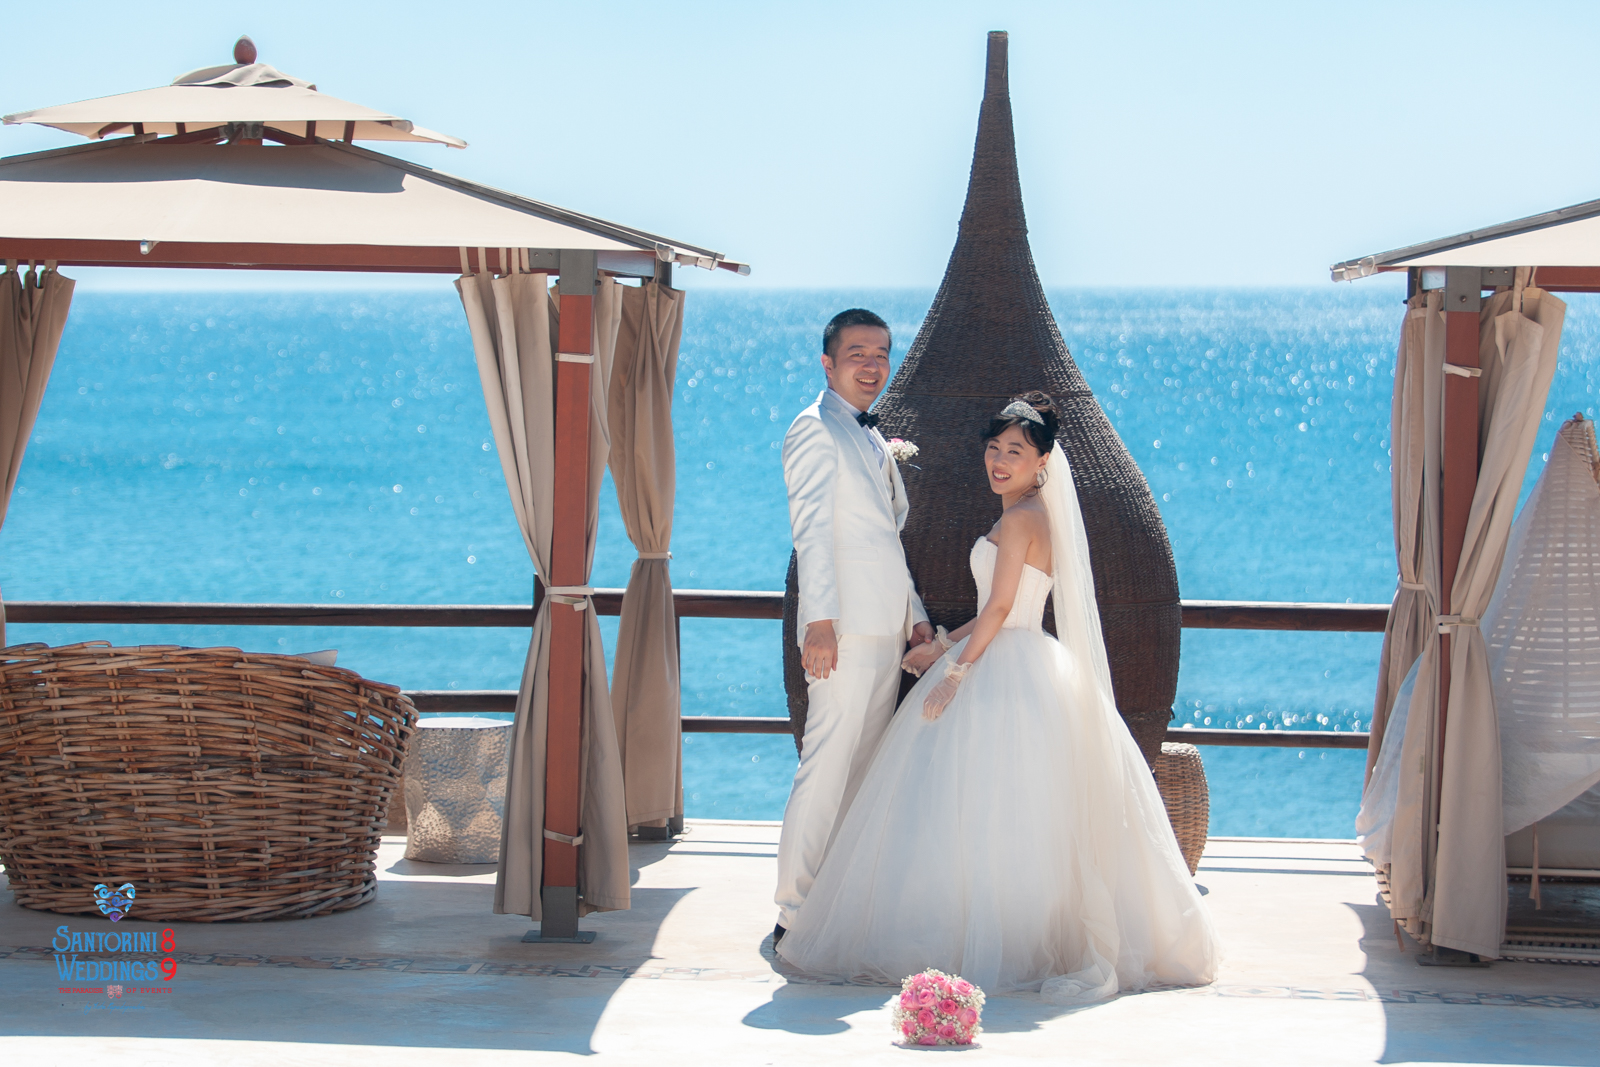 wedding-photo-shooting-jeffrey-yanjie-by-santorini8-weddings9---dragons-group-387.jpg